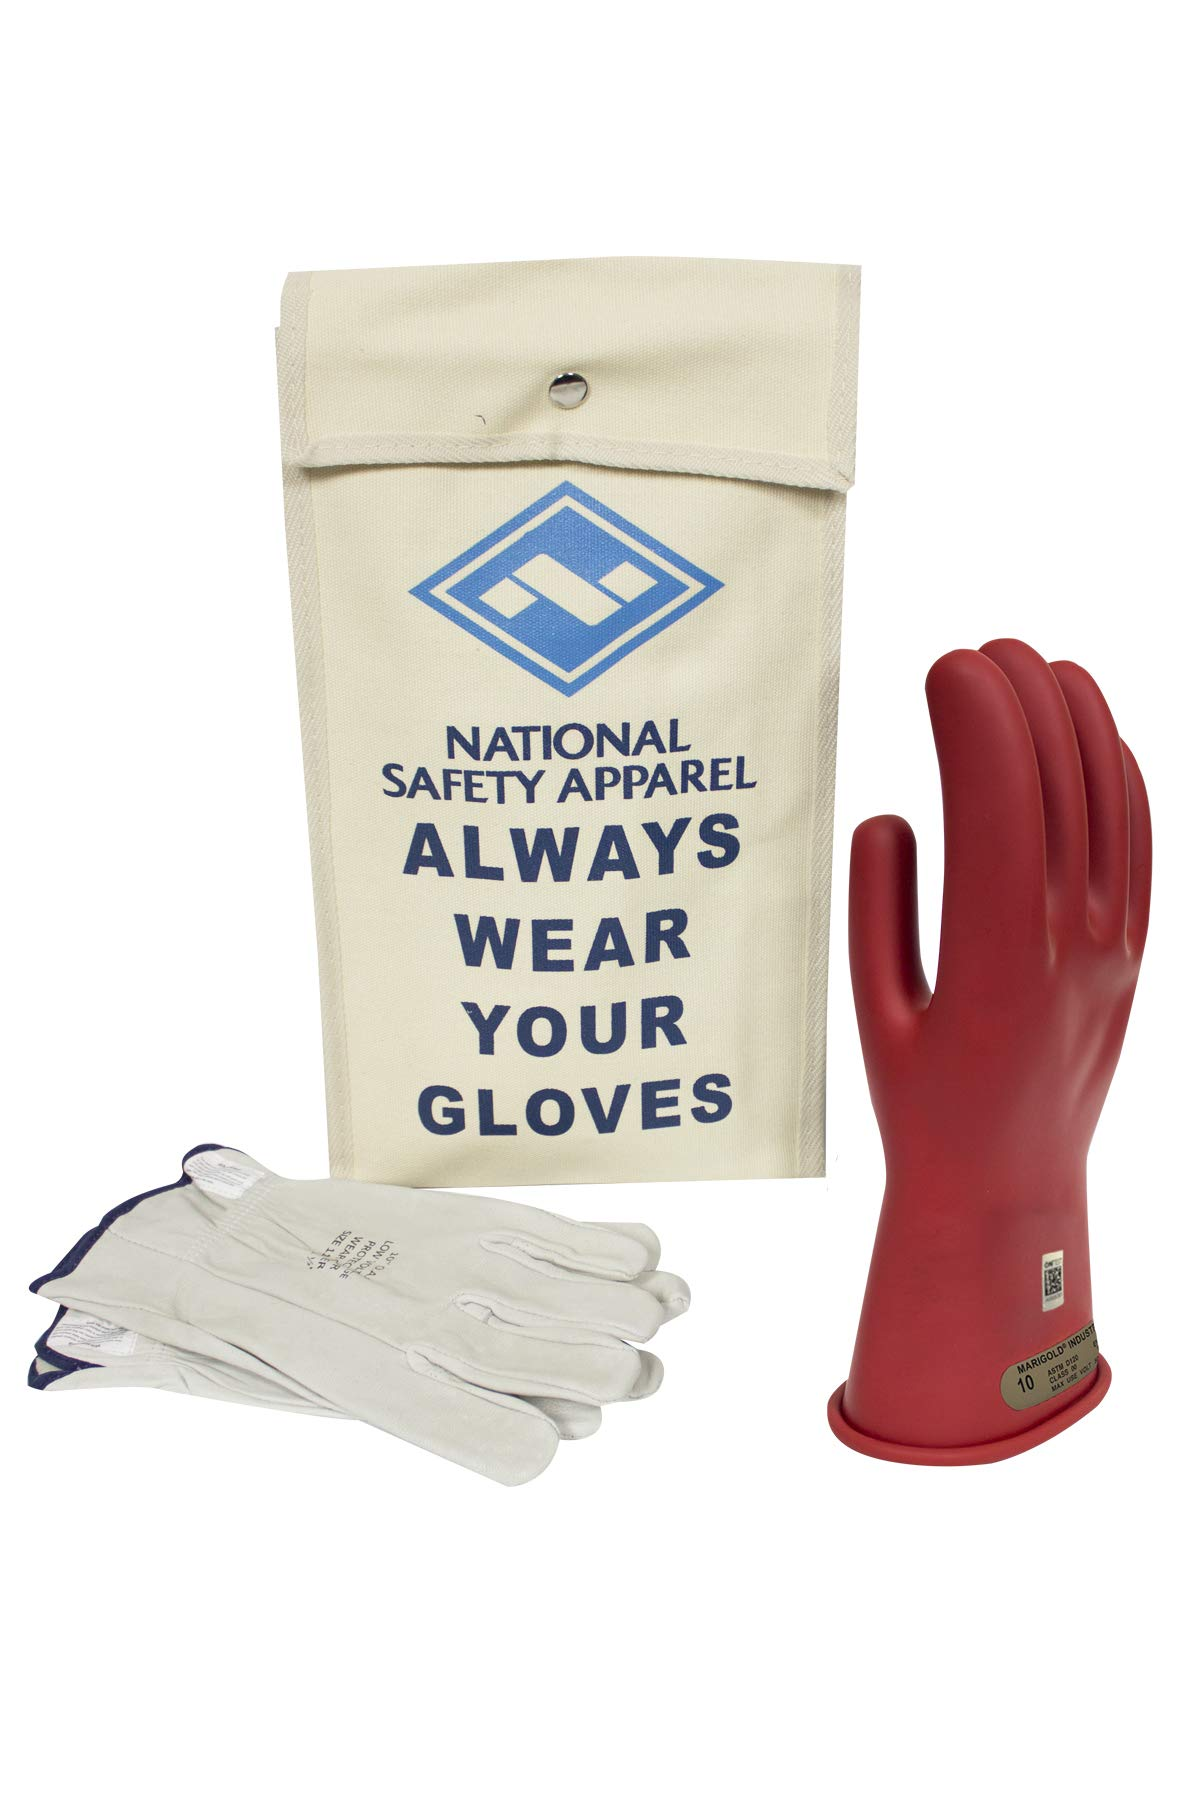 National Safety Apparel Class 00 Red Rubber Voltage Insulating Glove Kit with Leather Protectors, Max. Use Voltage 500V AC/ 750V DC (KITGC0010R) by National Safety Apparel Inc (Image #1)